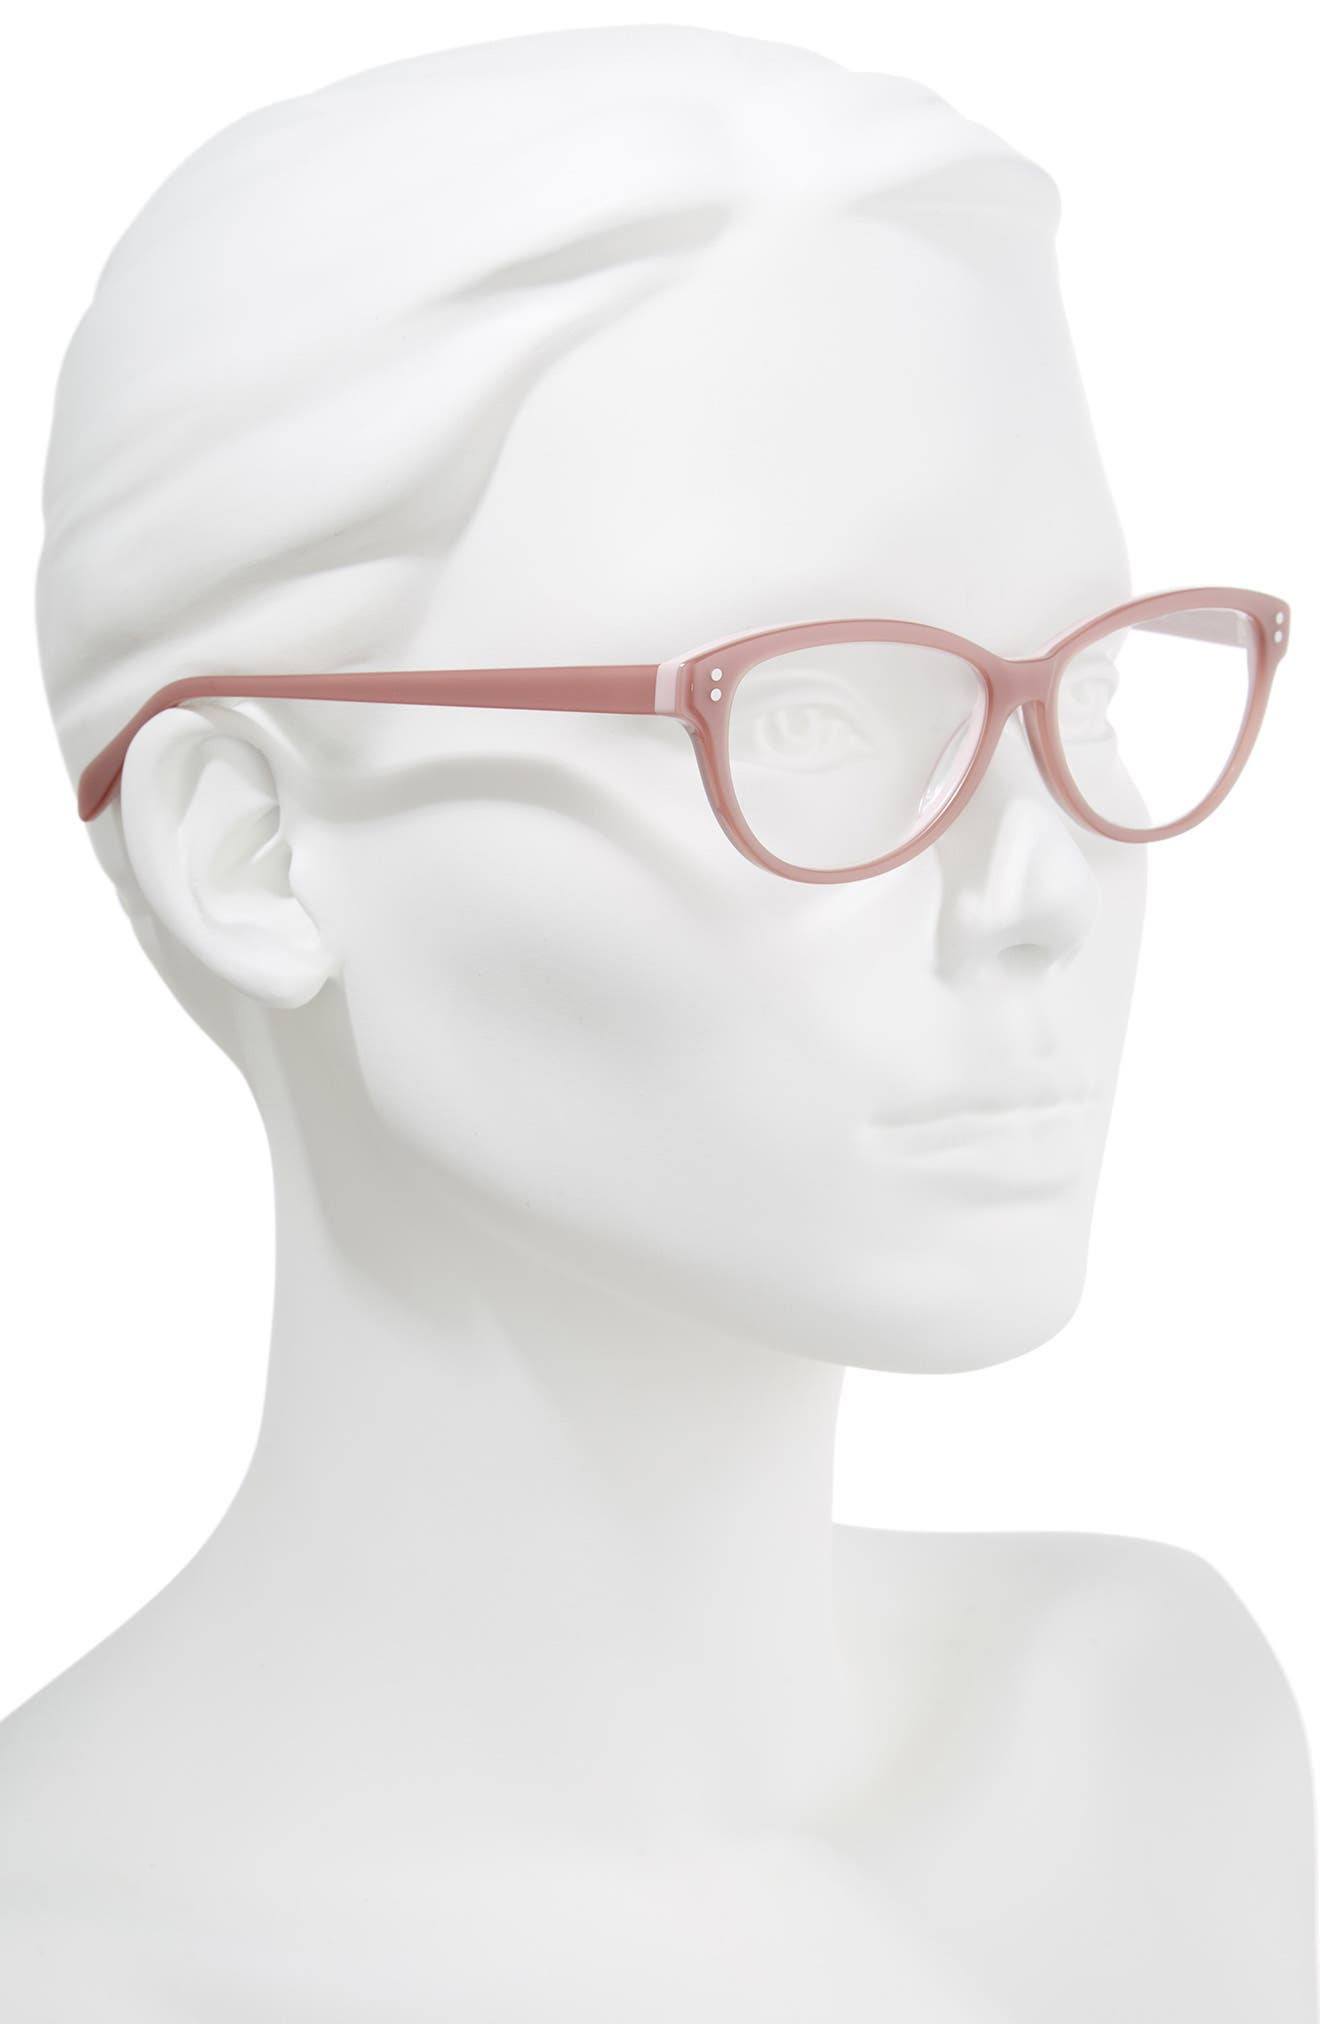 Marley 52mm Reading Glasses,                             Alternate thumbnail 2, color,                             PINK